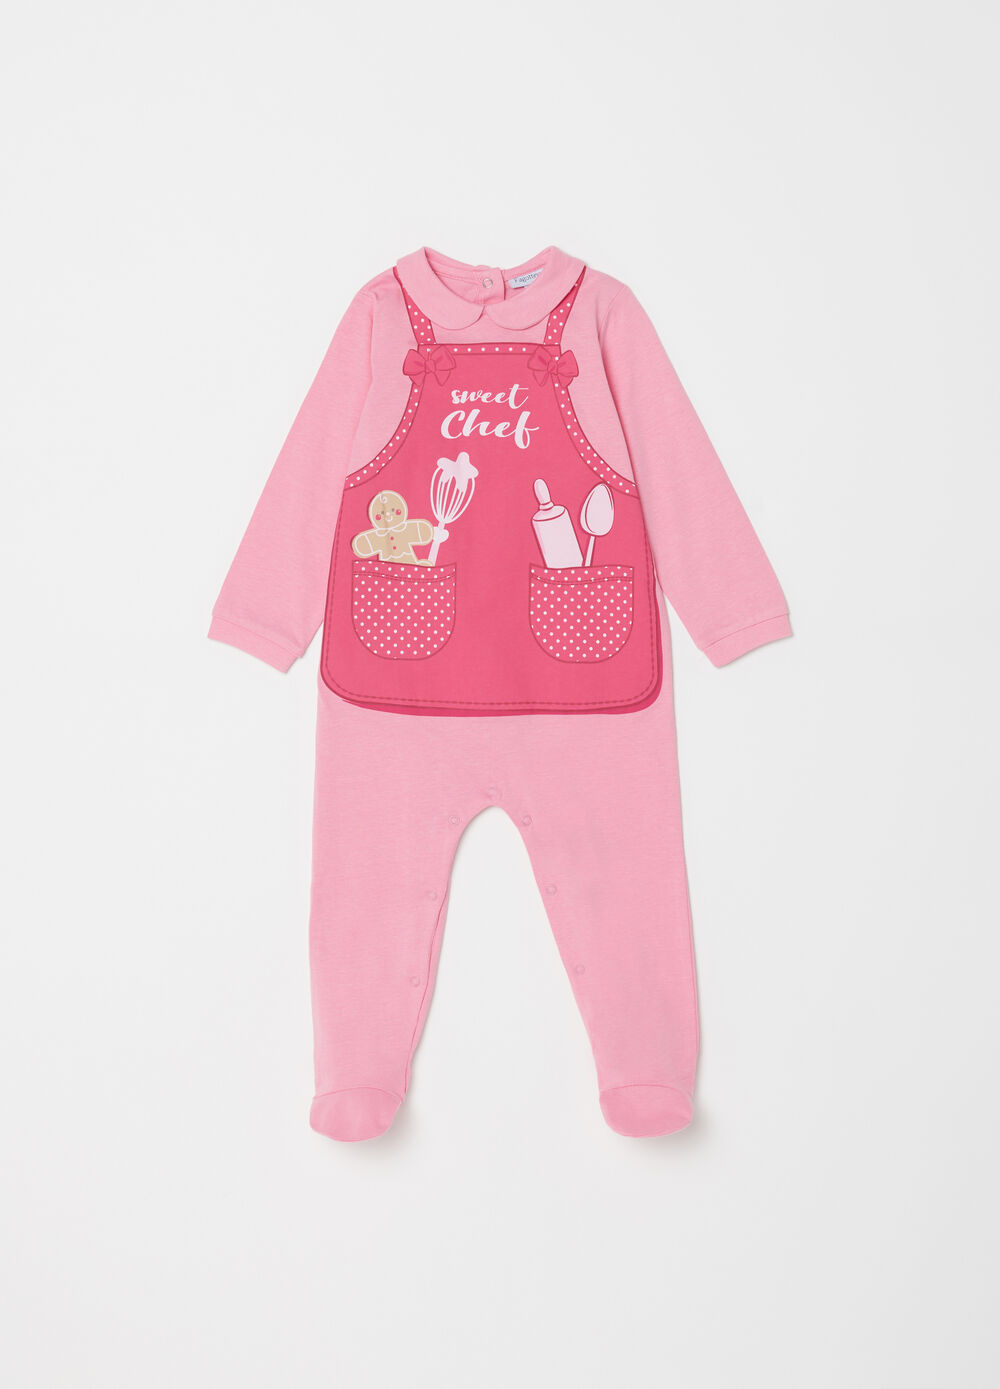 Chef print onesie with feet